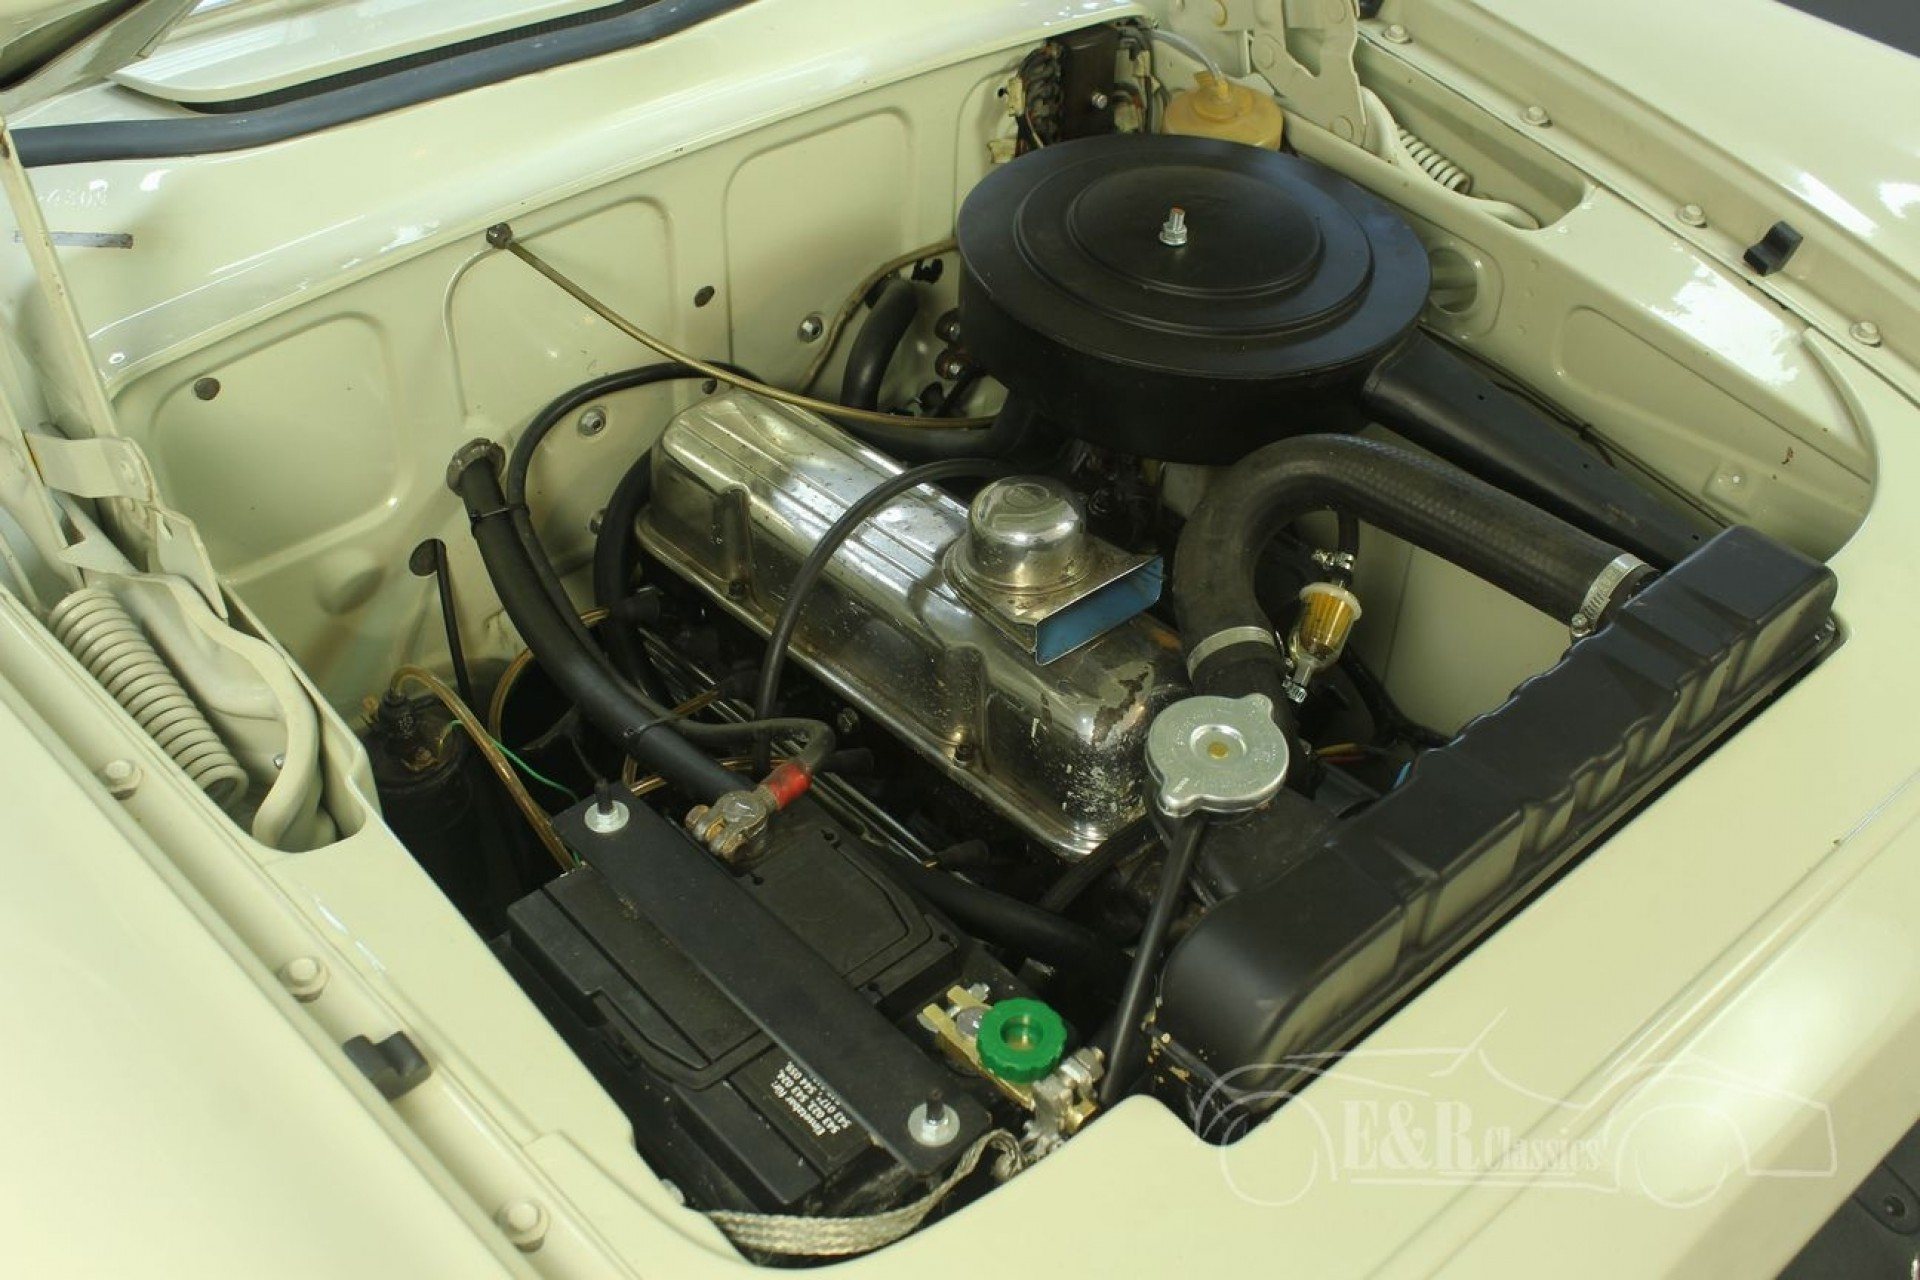 Opel Rekord Olympia P2 1700l 1961 For Sale At Erclassics